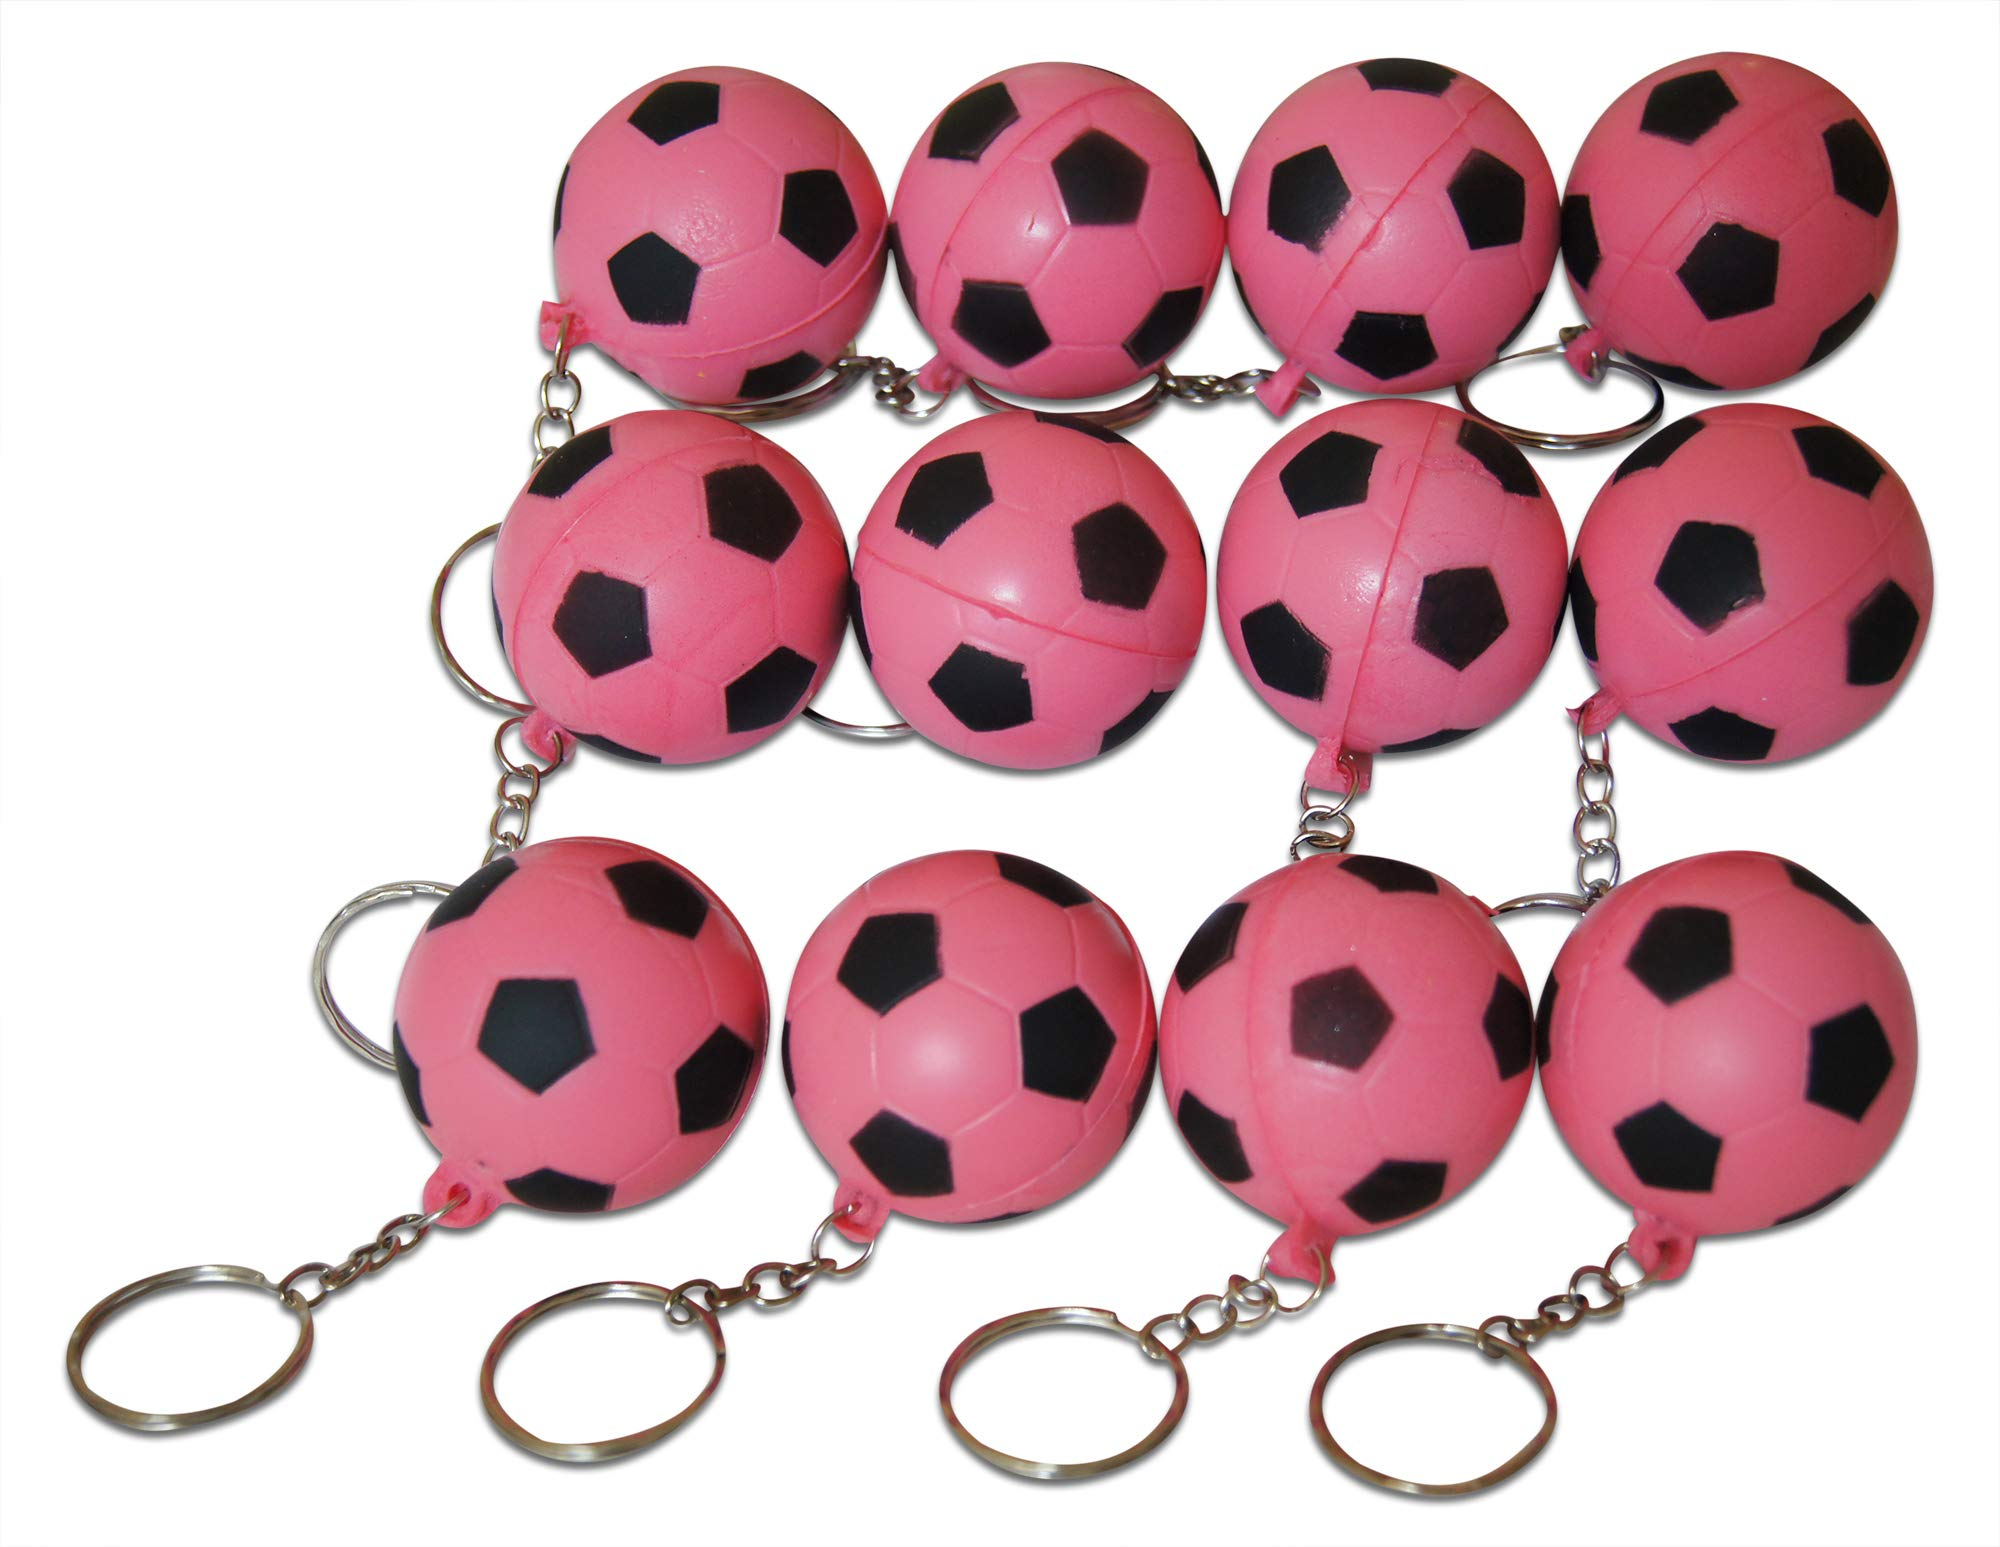 Novel Merk Pink Soccer 12-Piece Keychains for Party Favors & School Carnival Prizes